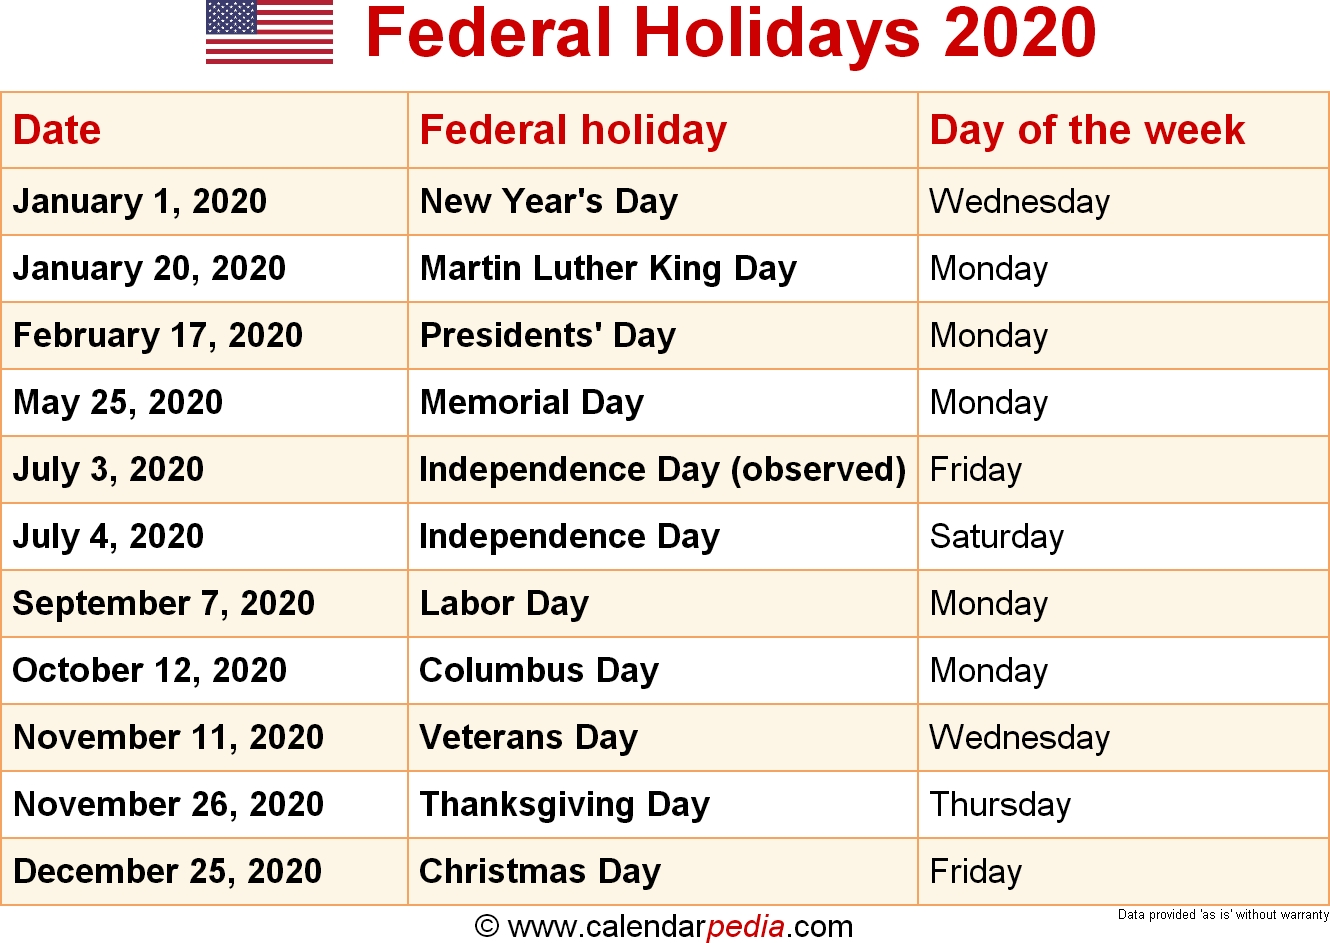 2020 Federal Holidays Observed